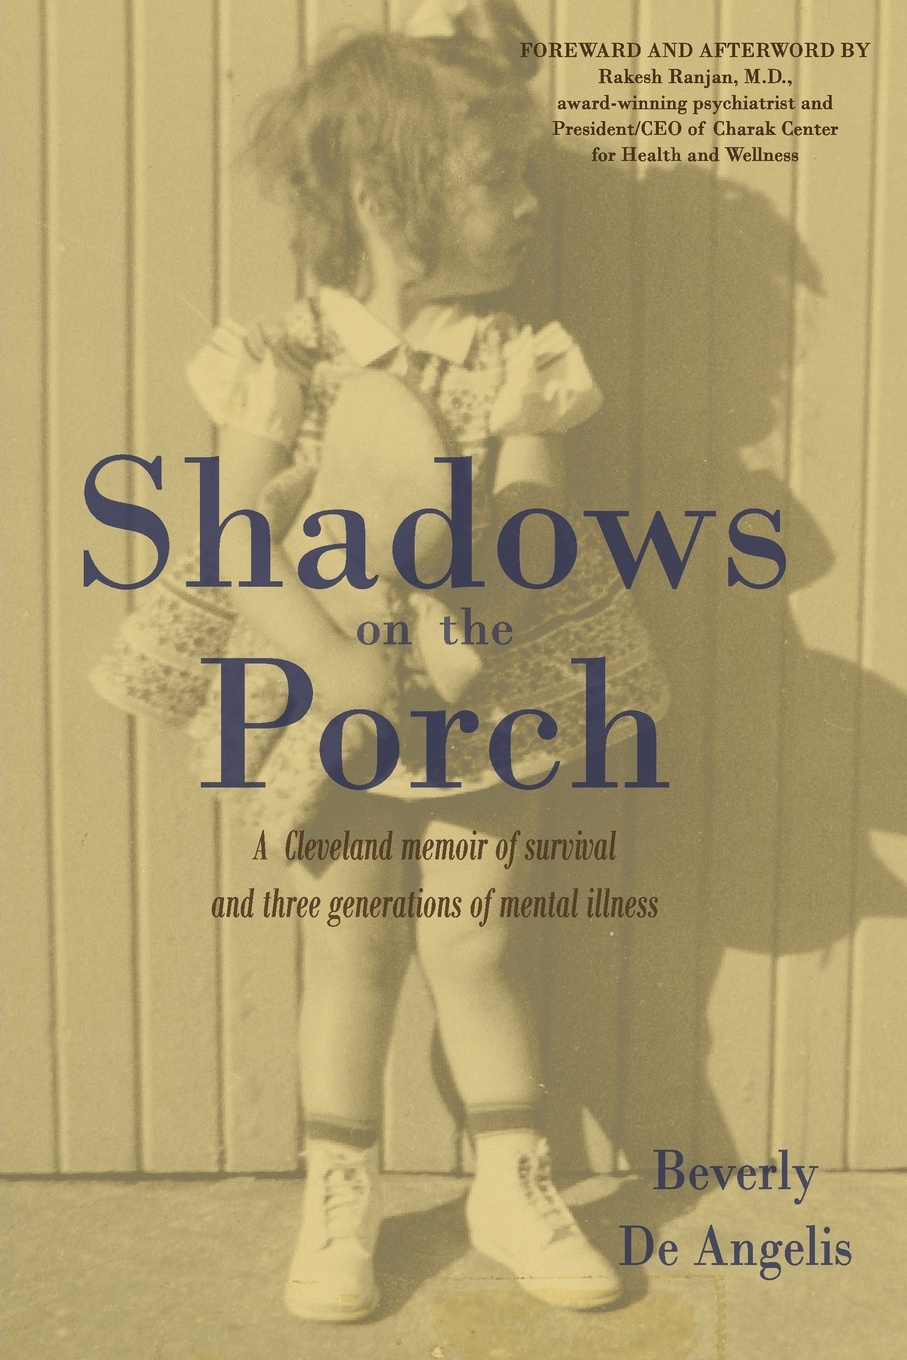 Beverly De Angelis Shadows on the Porch. A Cleveland memoir of survival and three generations of mental illness